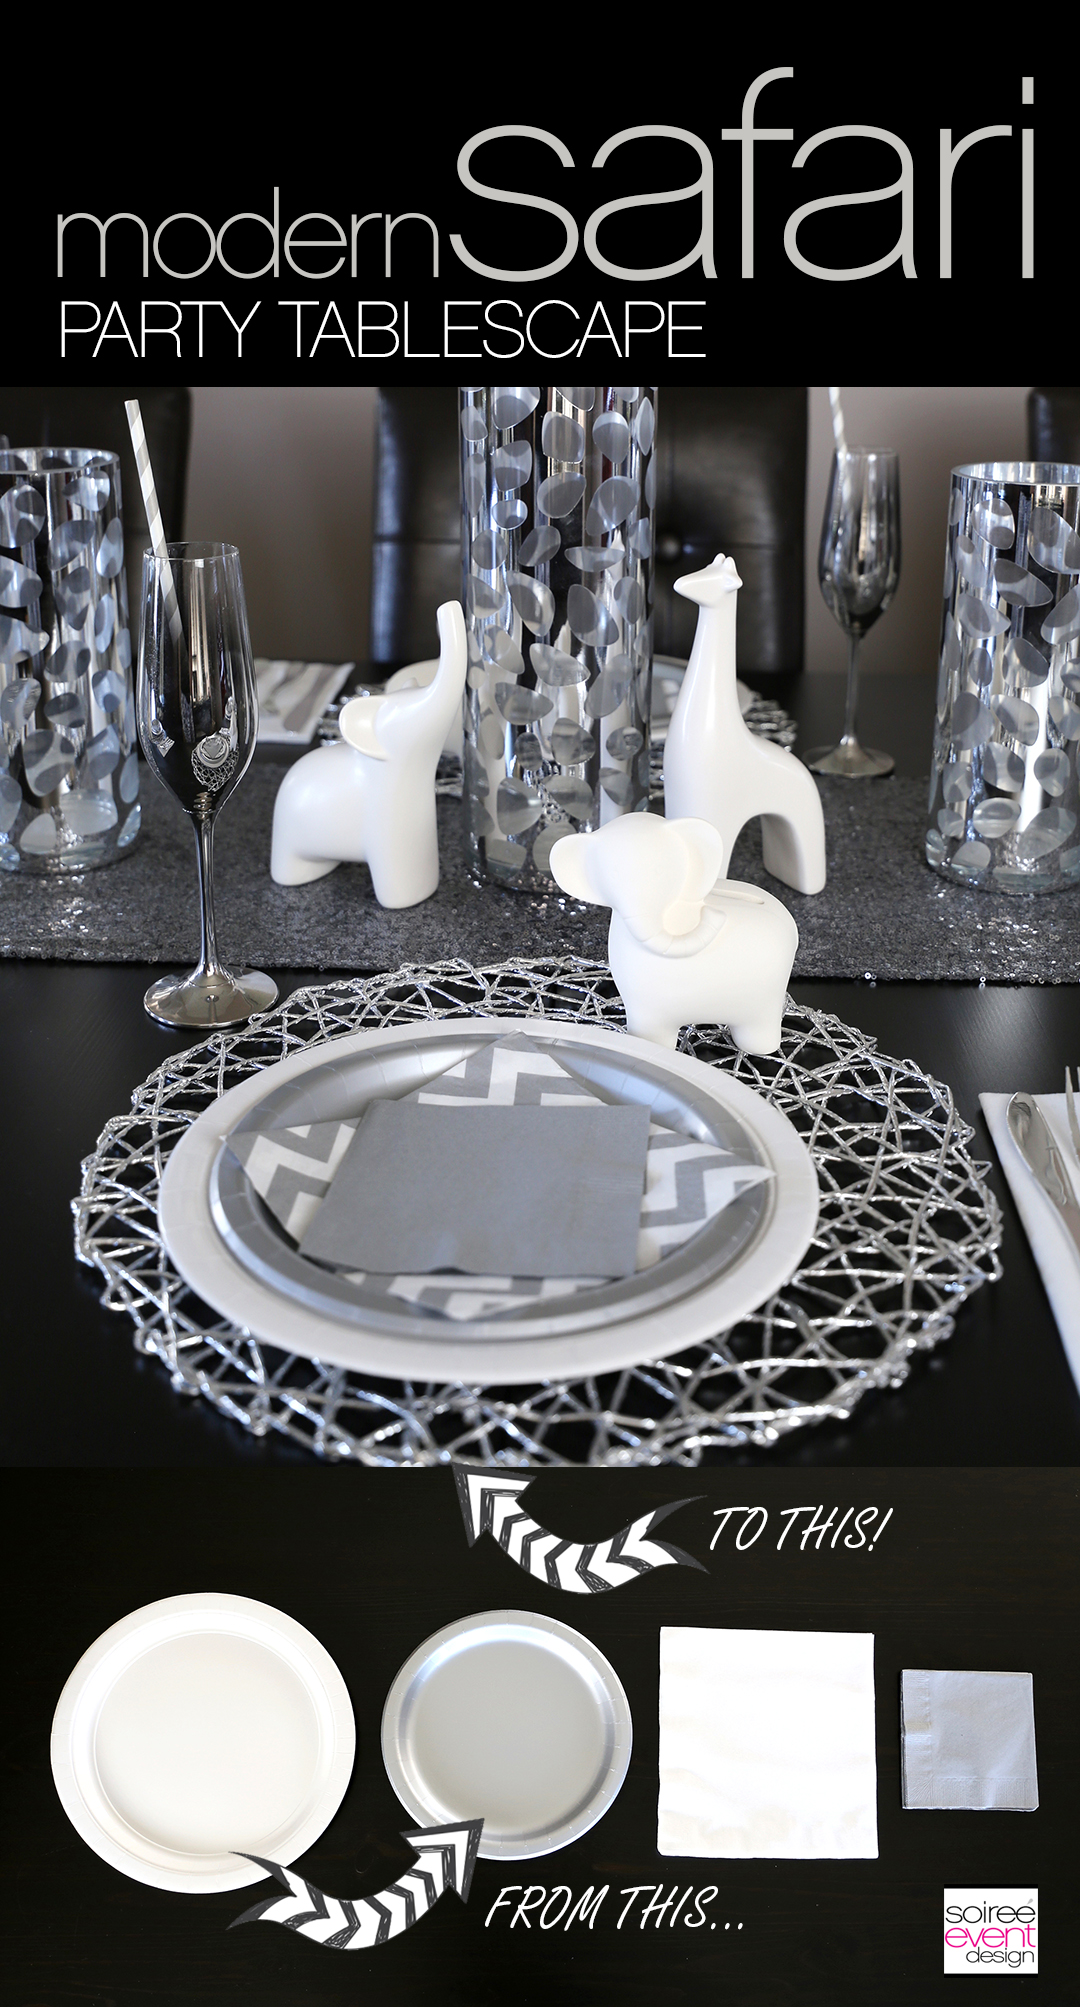 Modern Safari party tablescape